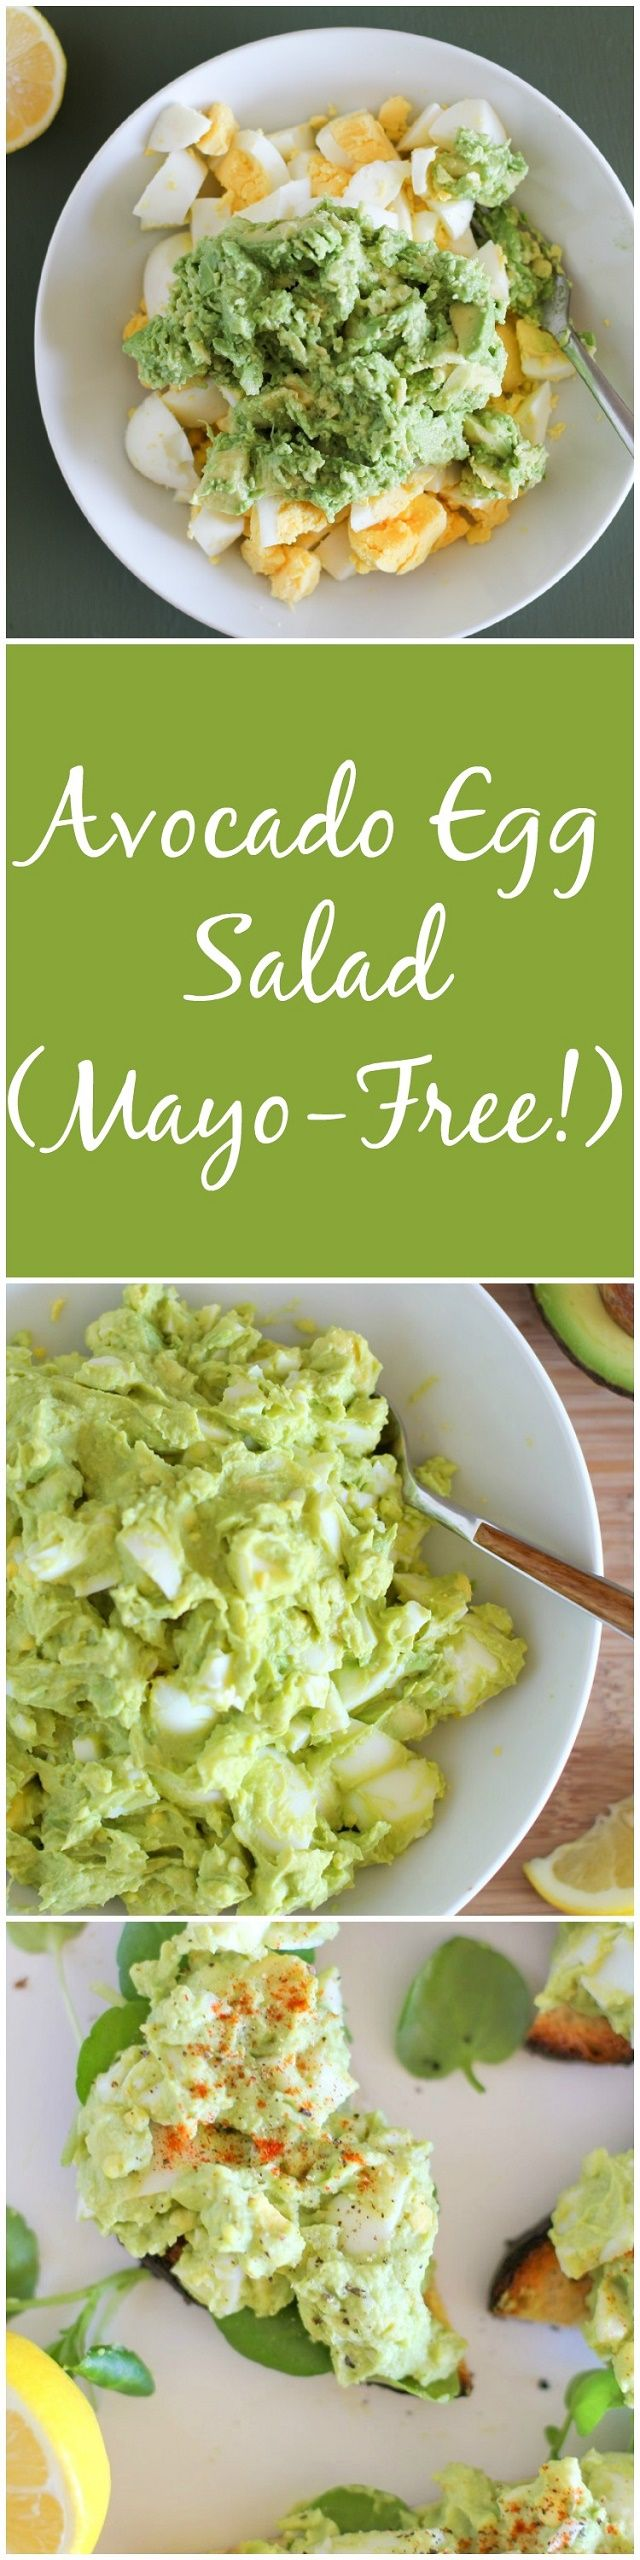 Mayo-free avocado egg salad makes an easy go-to lunch recipe. This easy, 4-ingredient recipe requires hardly any time or effort! //video.mediavine.com/videos/rzhfinpxxo6uqzrfdowd.js Sometimes we ne…